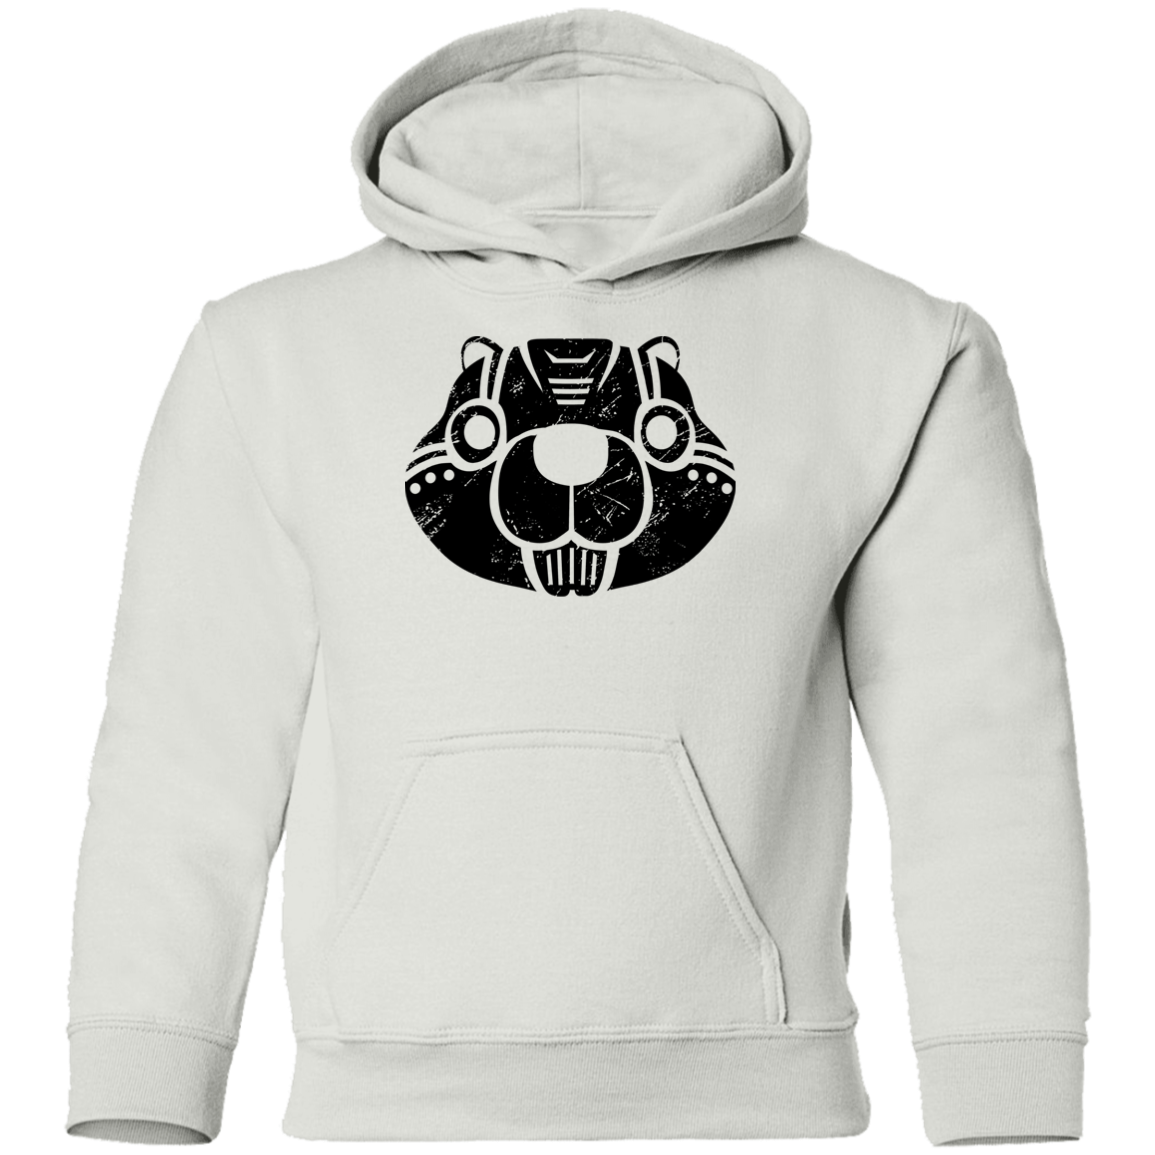 Black Distressed Emblem Hoodies for Kids (Beaver/Buzzcut)